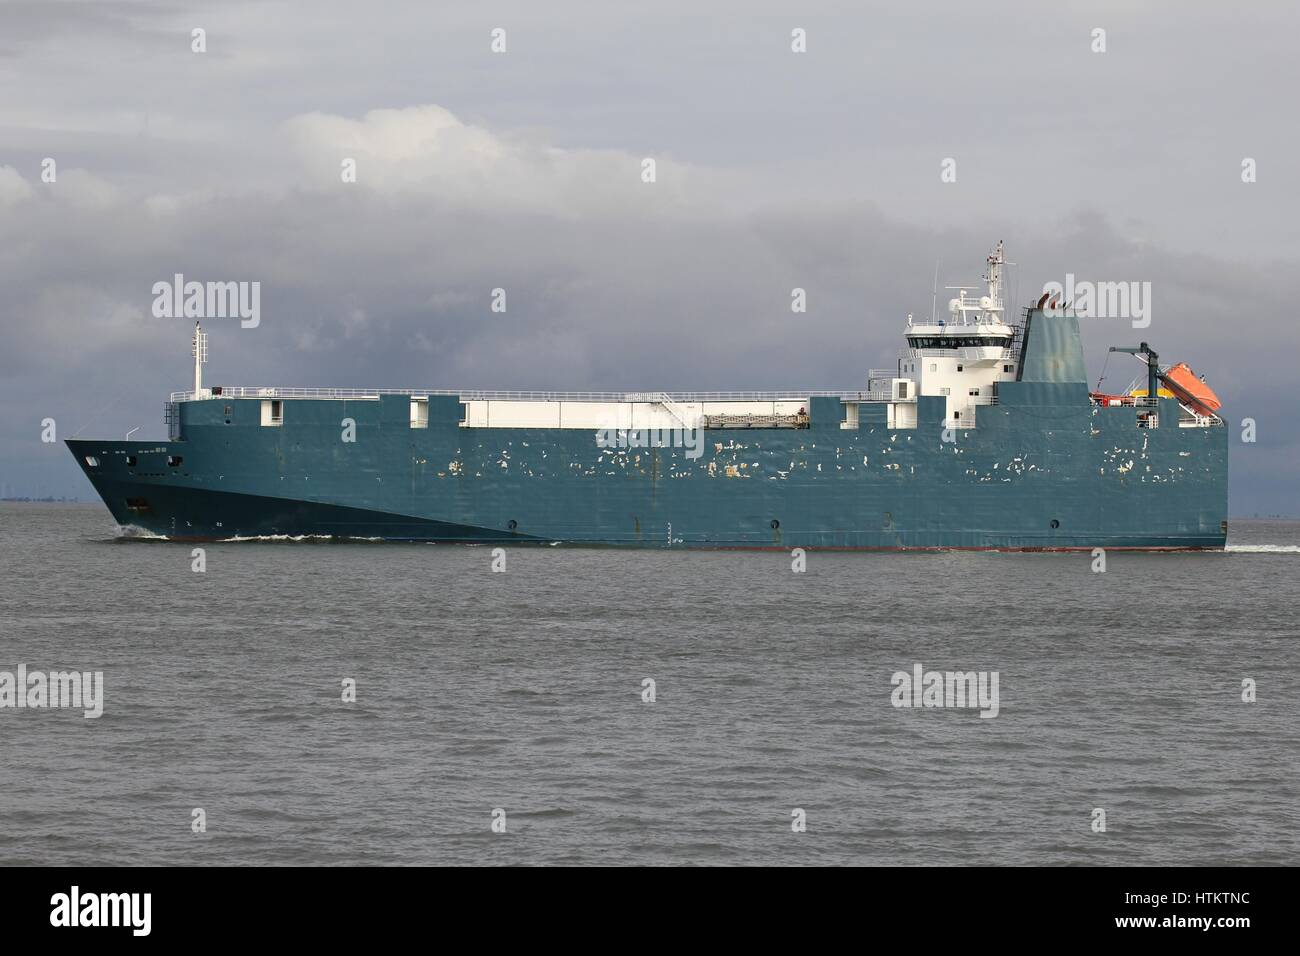 pure car and truck carrier at sea - Stock Image